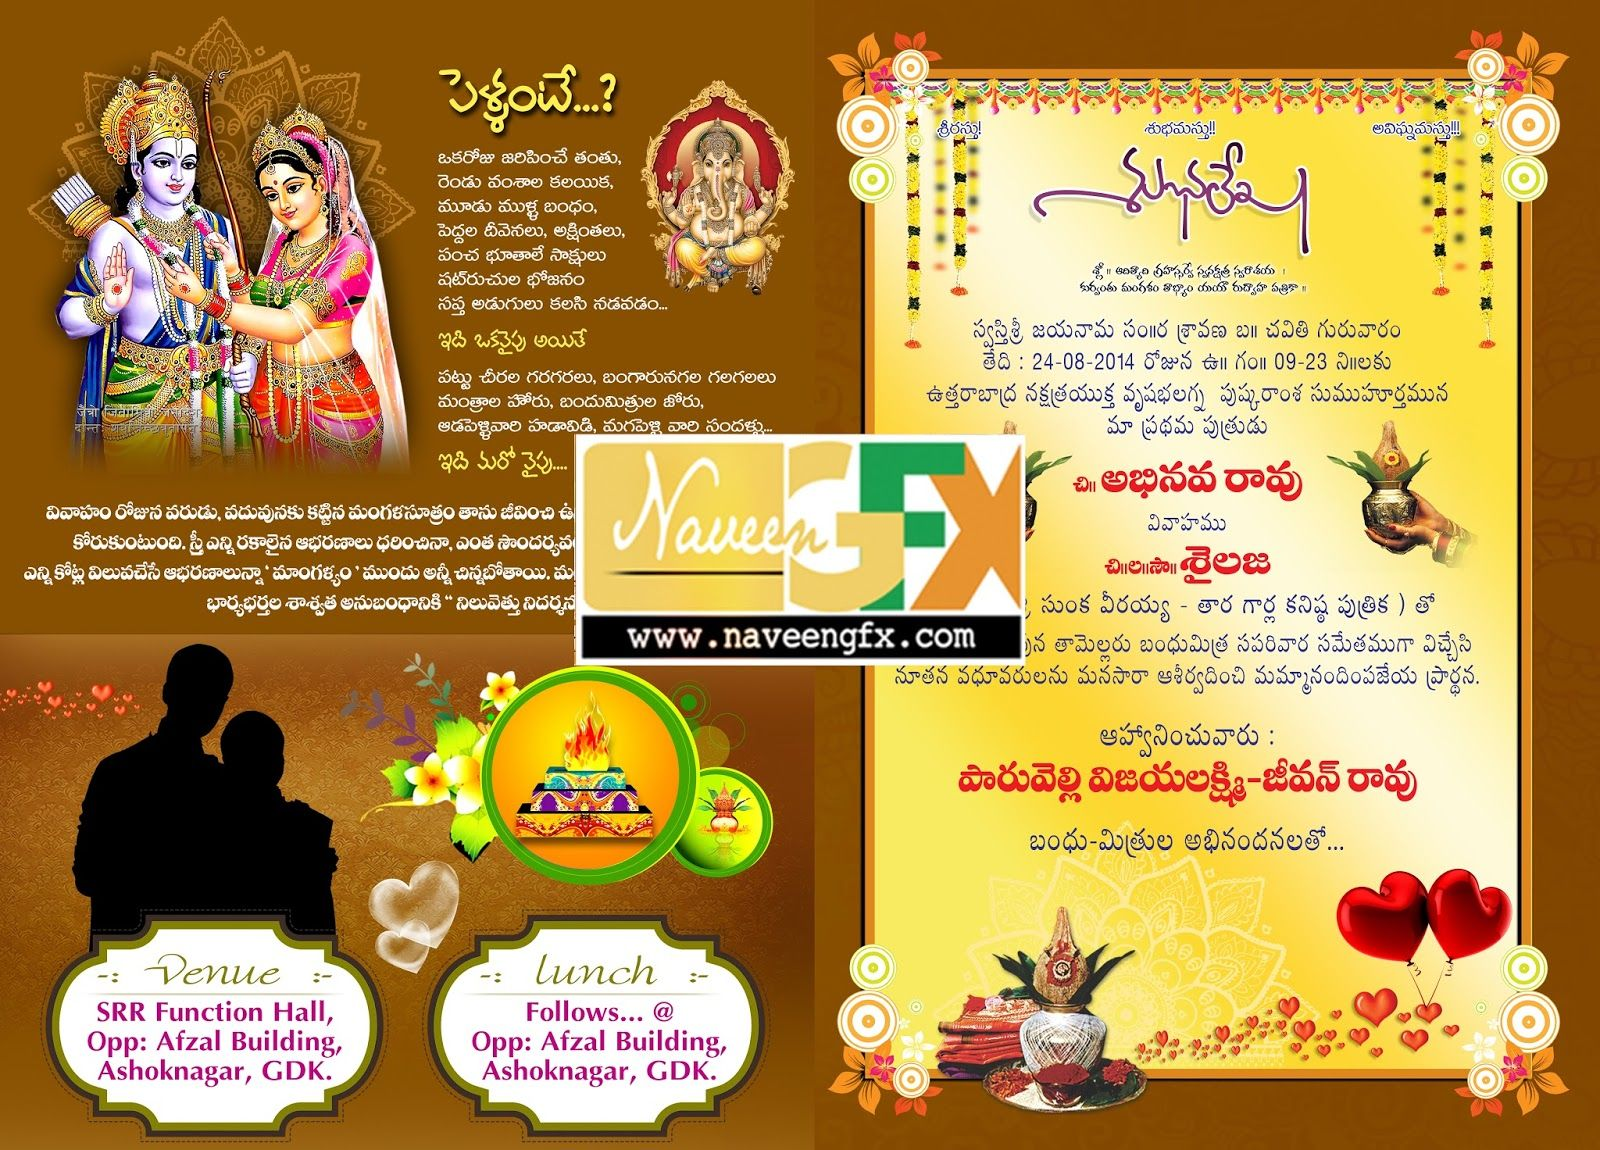 Indian Wedding Card Design Psd Template Free S Naveengfx | hhhrrhgjj ...